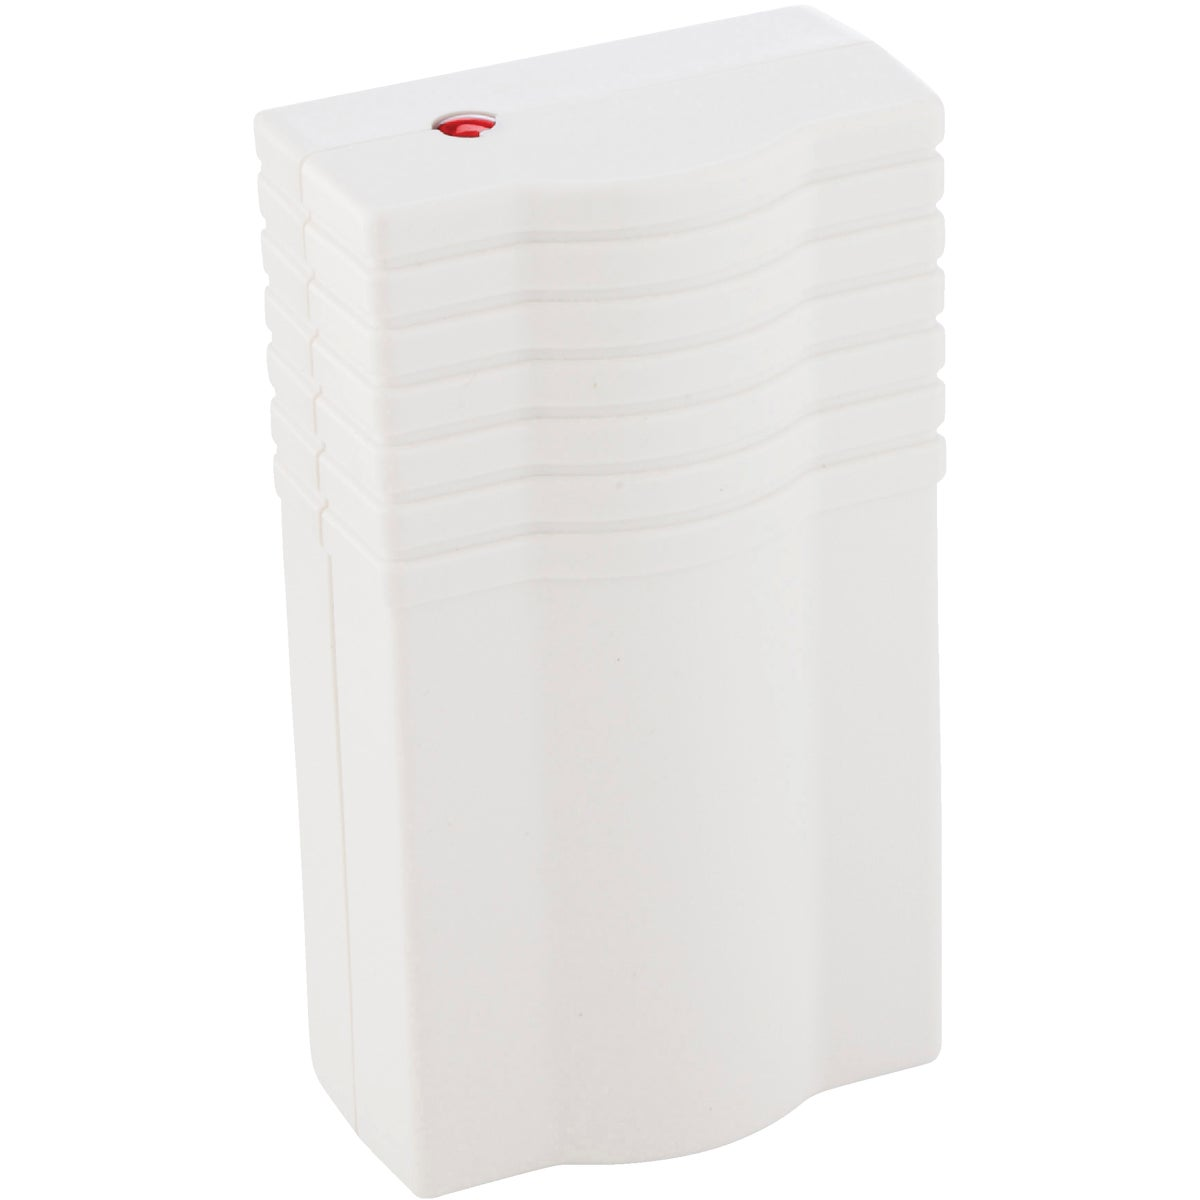 2000SQFT RODENT REPELLER - 2100 by Global Instruments